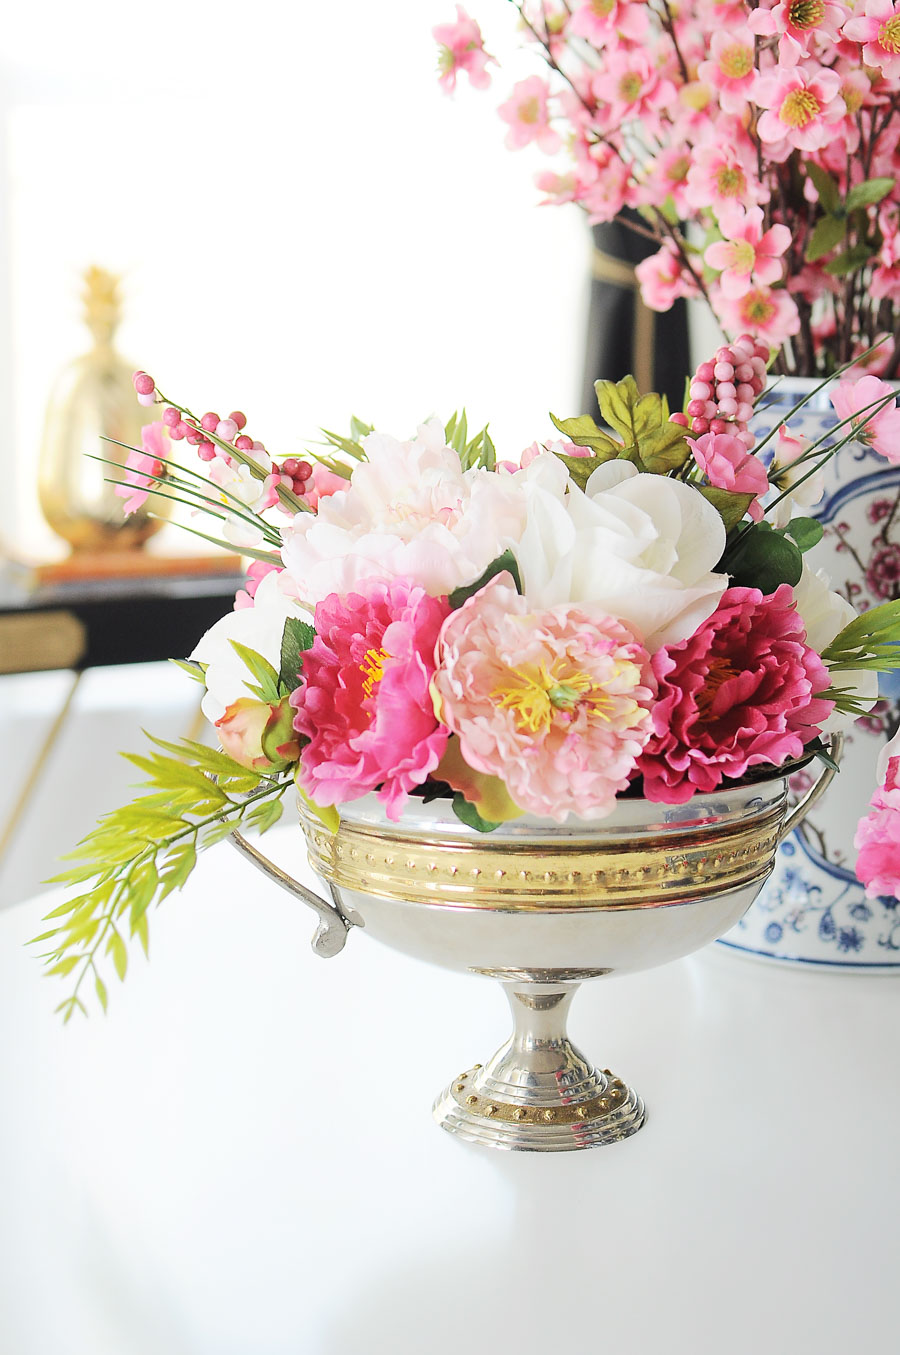 DIY pink and white peony faux floral arrangement tutorial using a trophy vase and dry floral foam. Love this idea for spring home decor, tablescapes or a centerpiece.